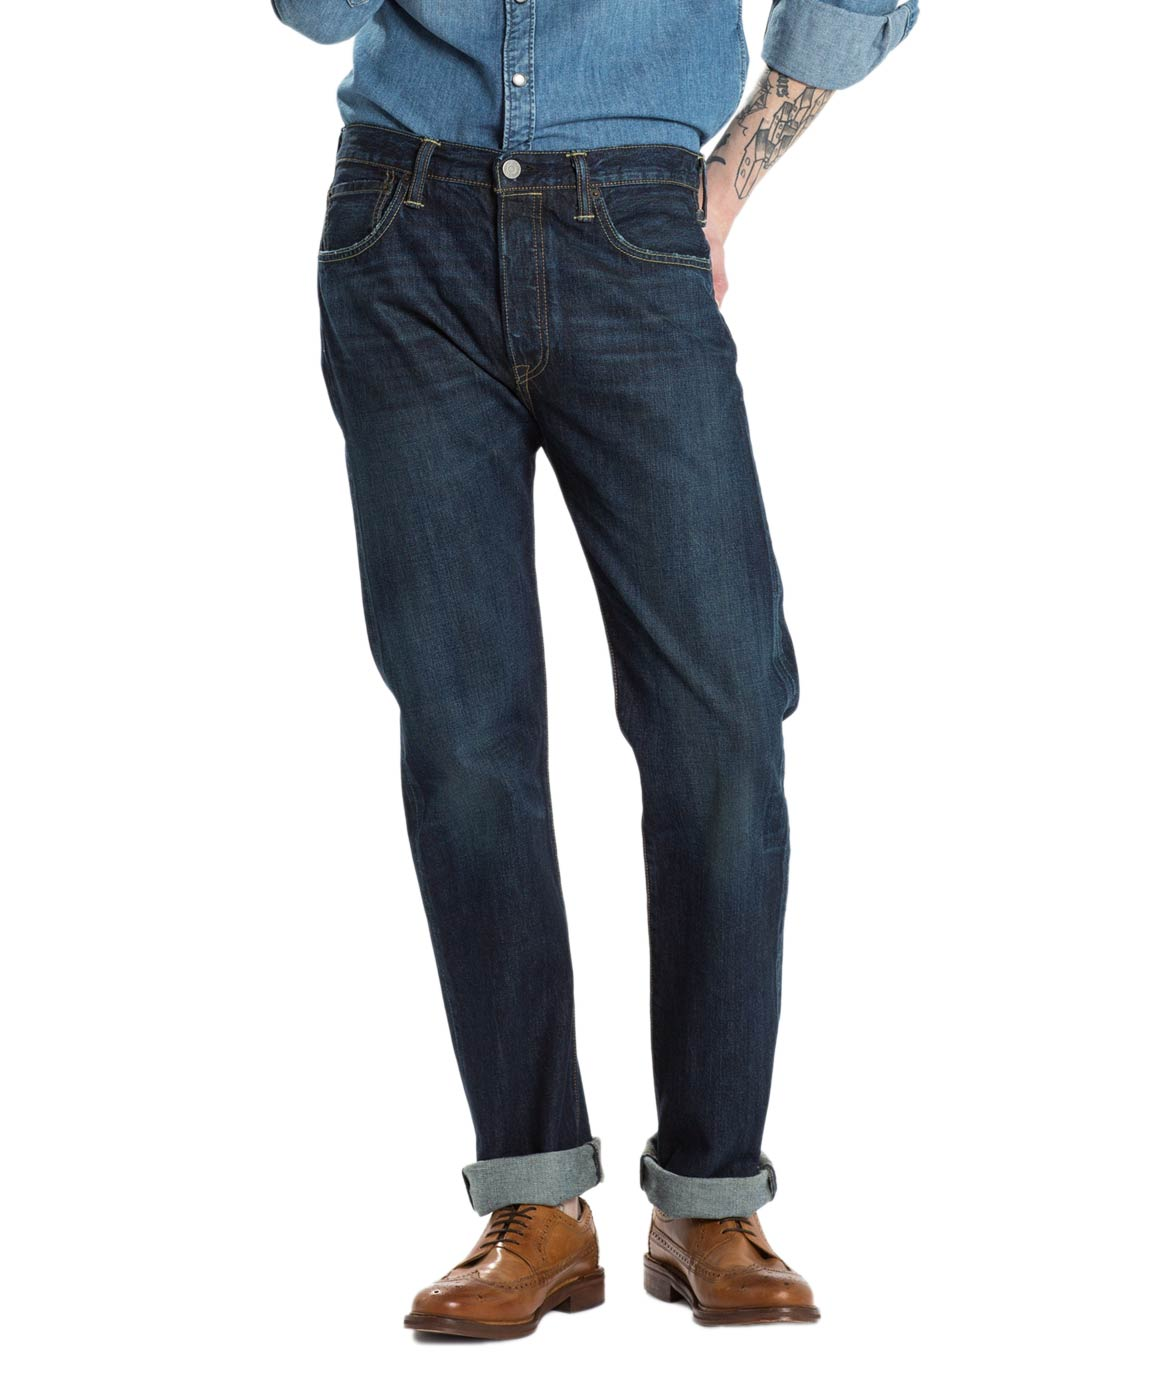 Levi's 501 Jeans - Original Fit - Smith Station